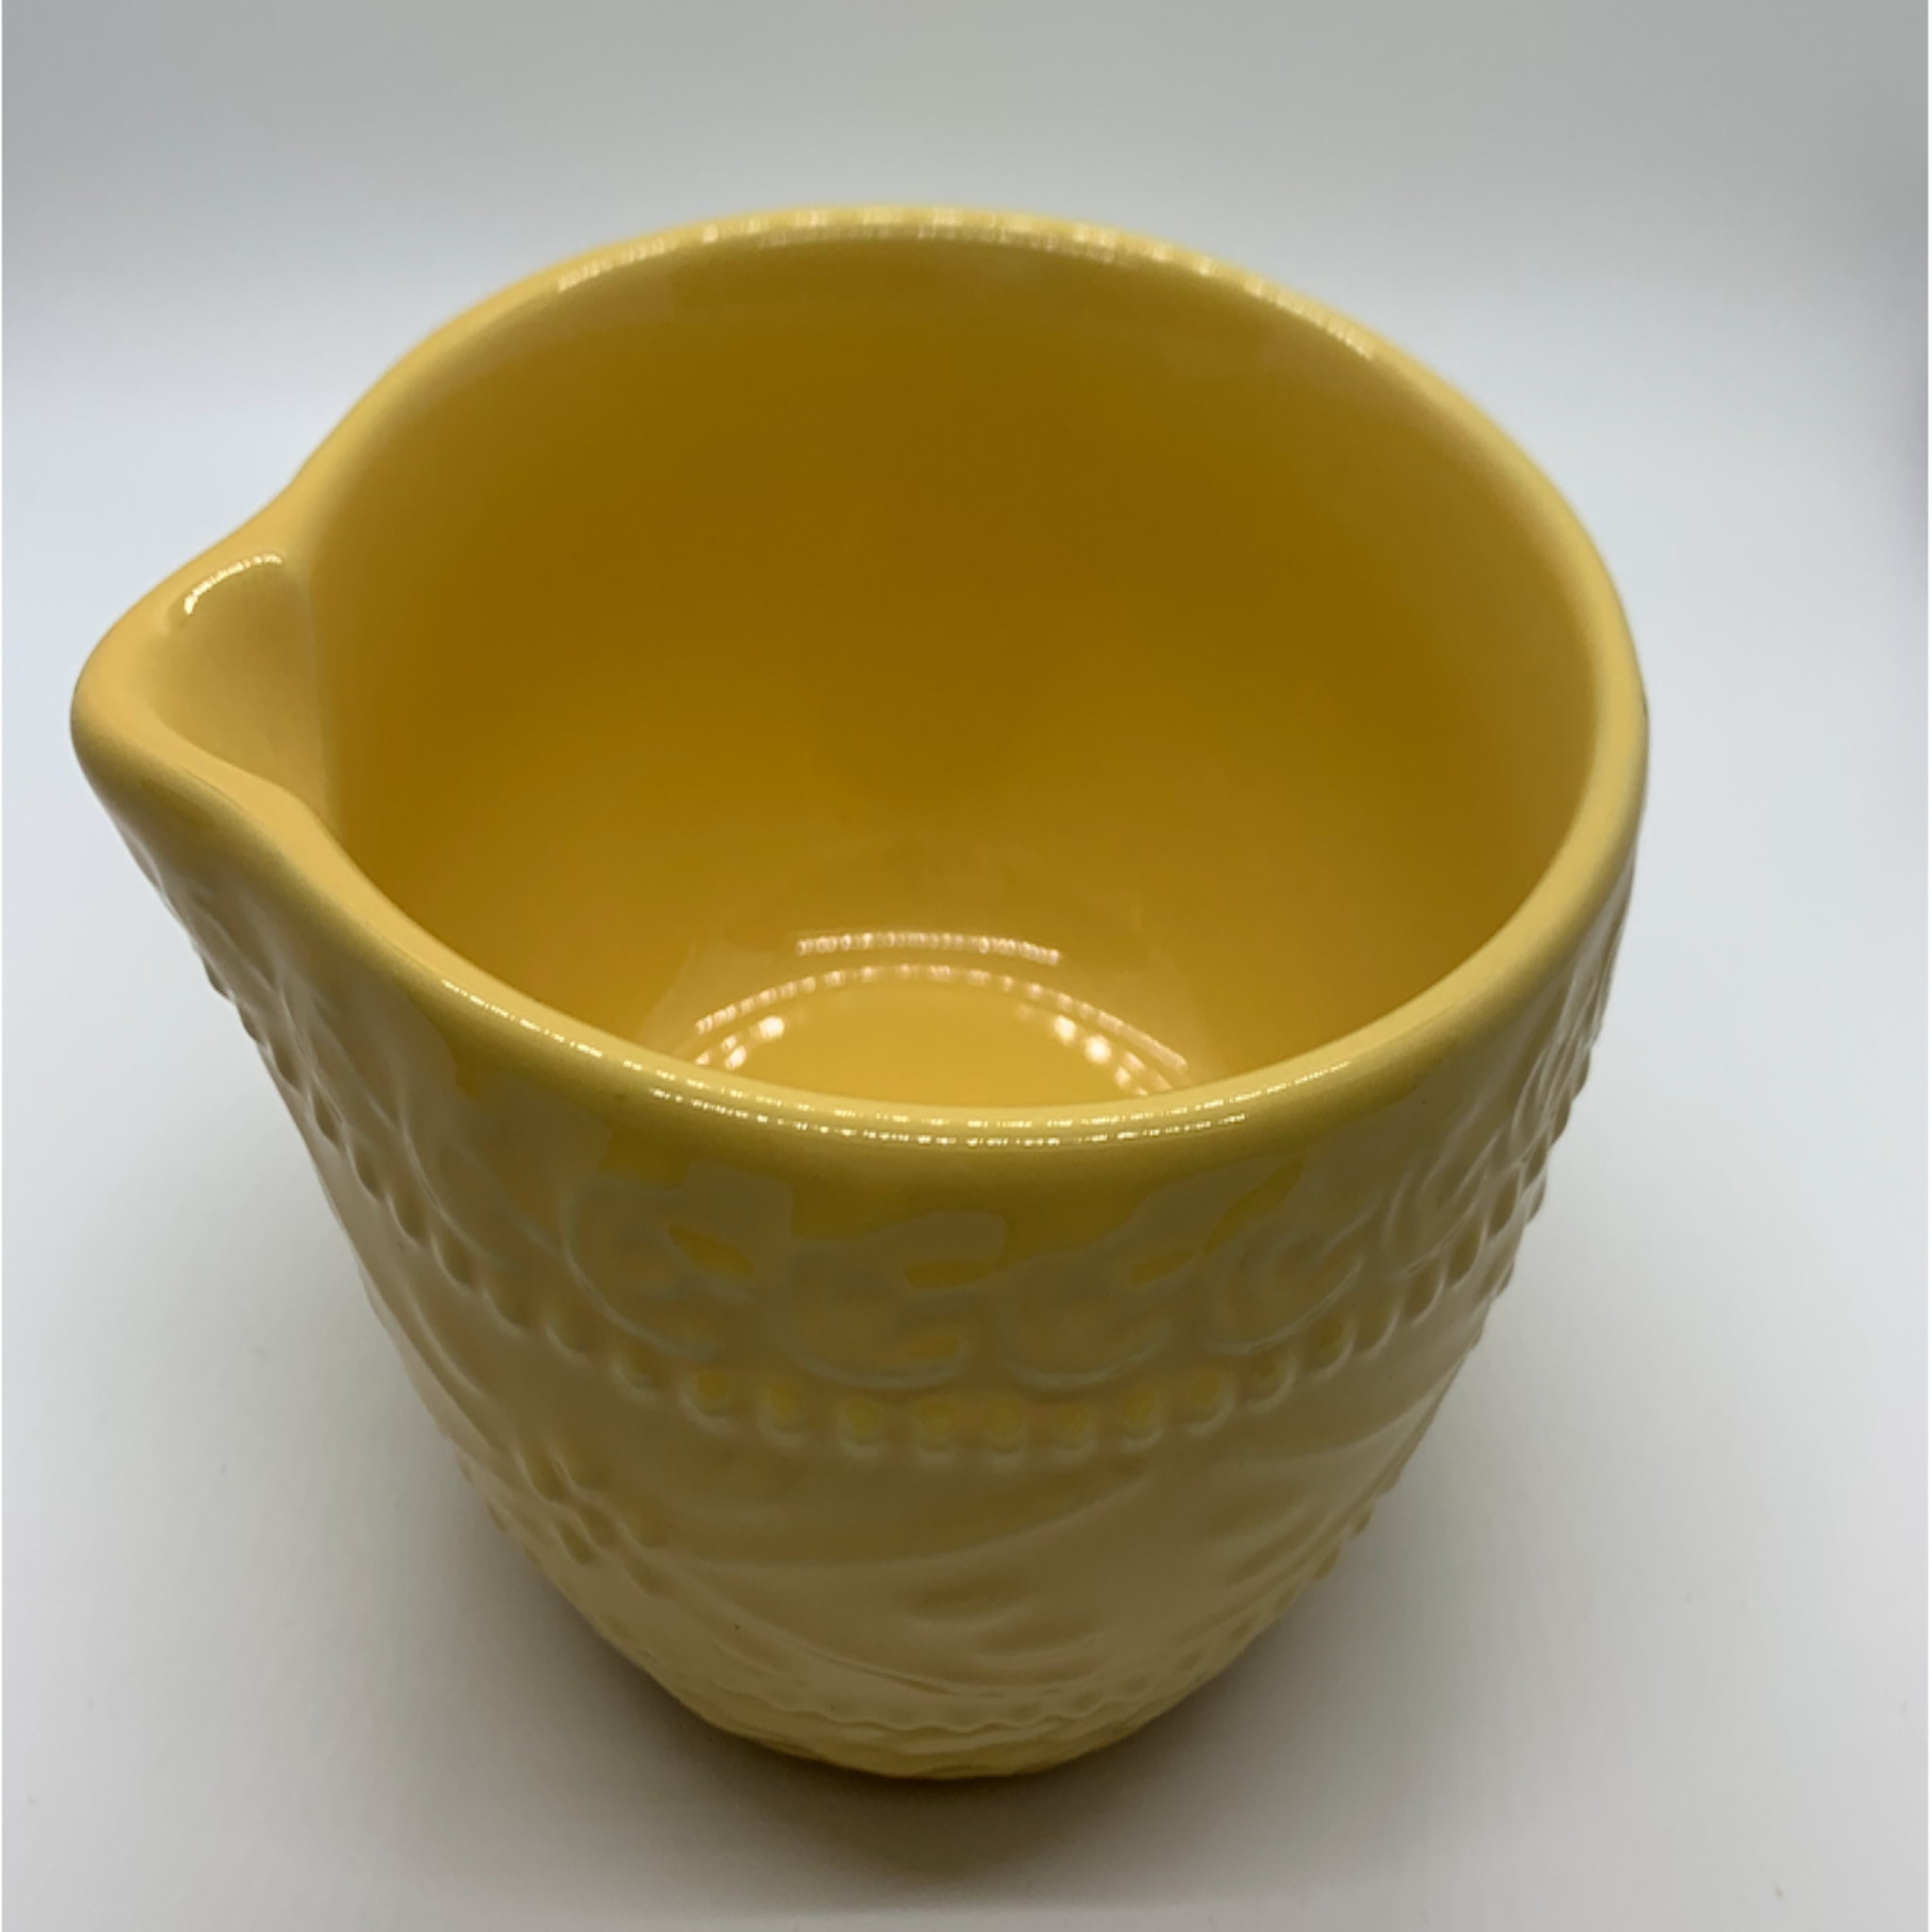 Yellow Serving Dishes with Trivets, Lids & Iron Serving Stands